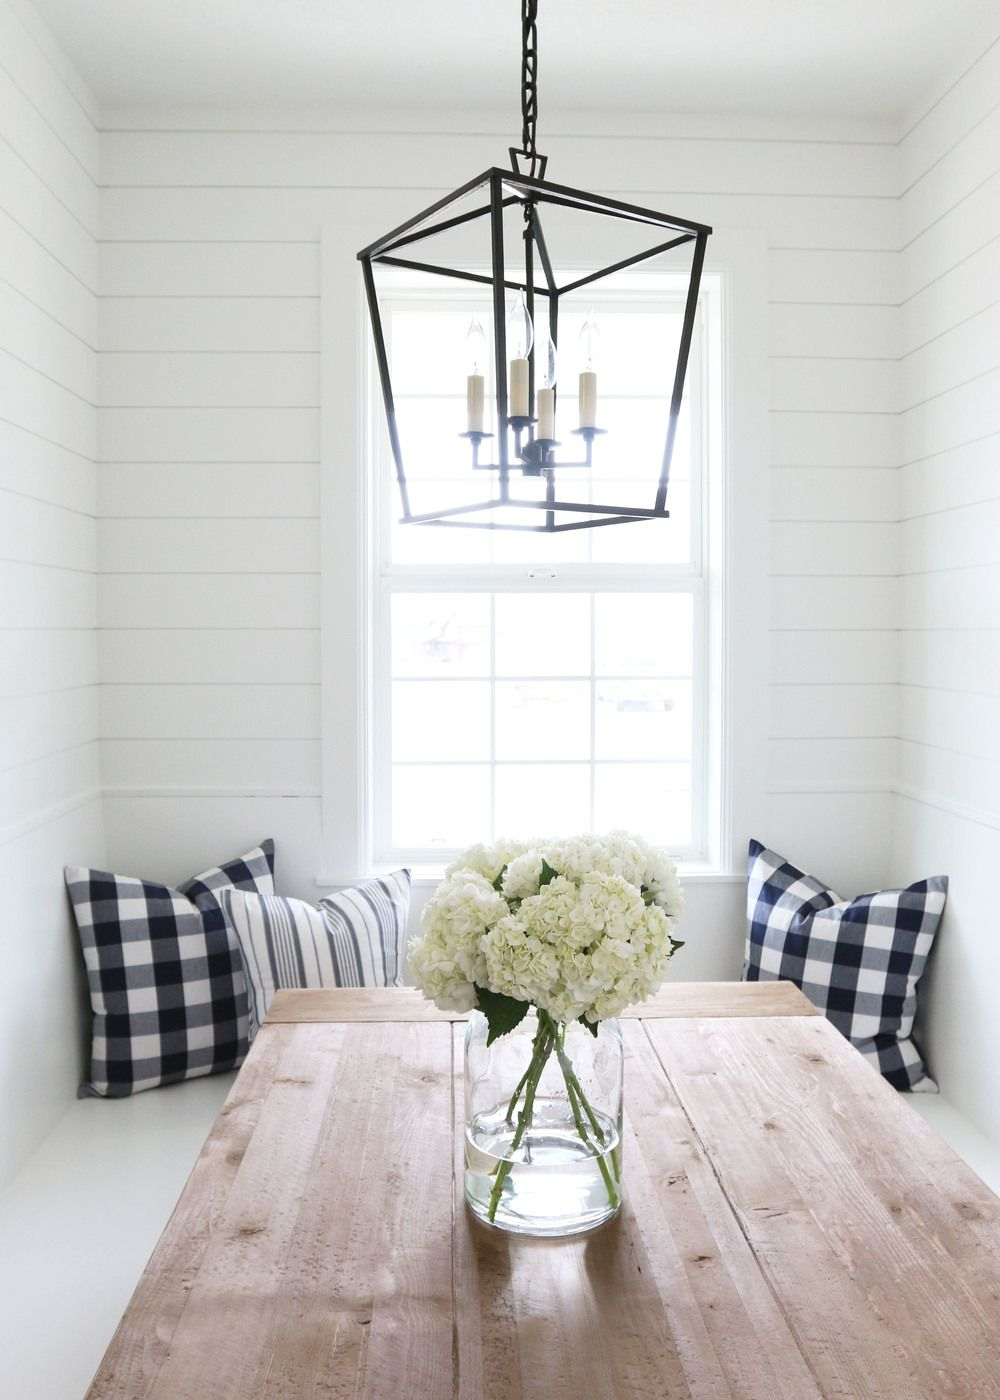 kitchen nook lighting. Kitchen Dining Nook W/ Gingham Pillows Lighting K